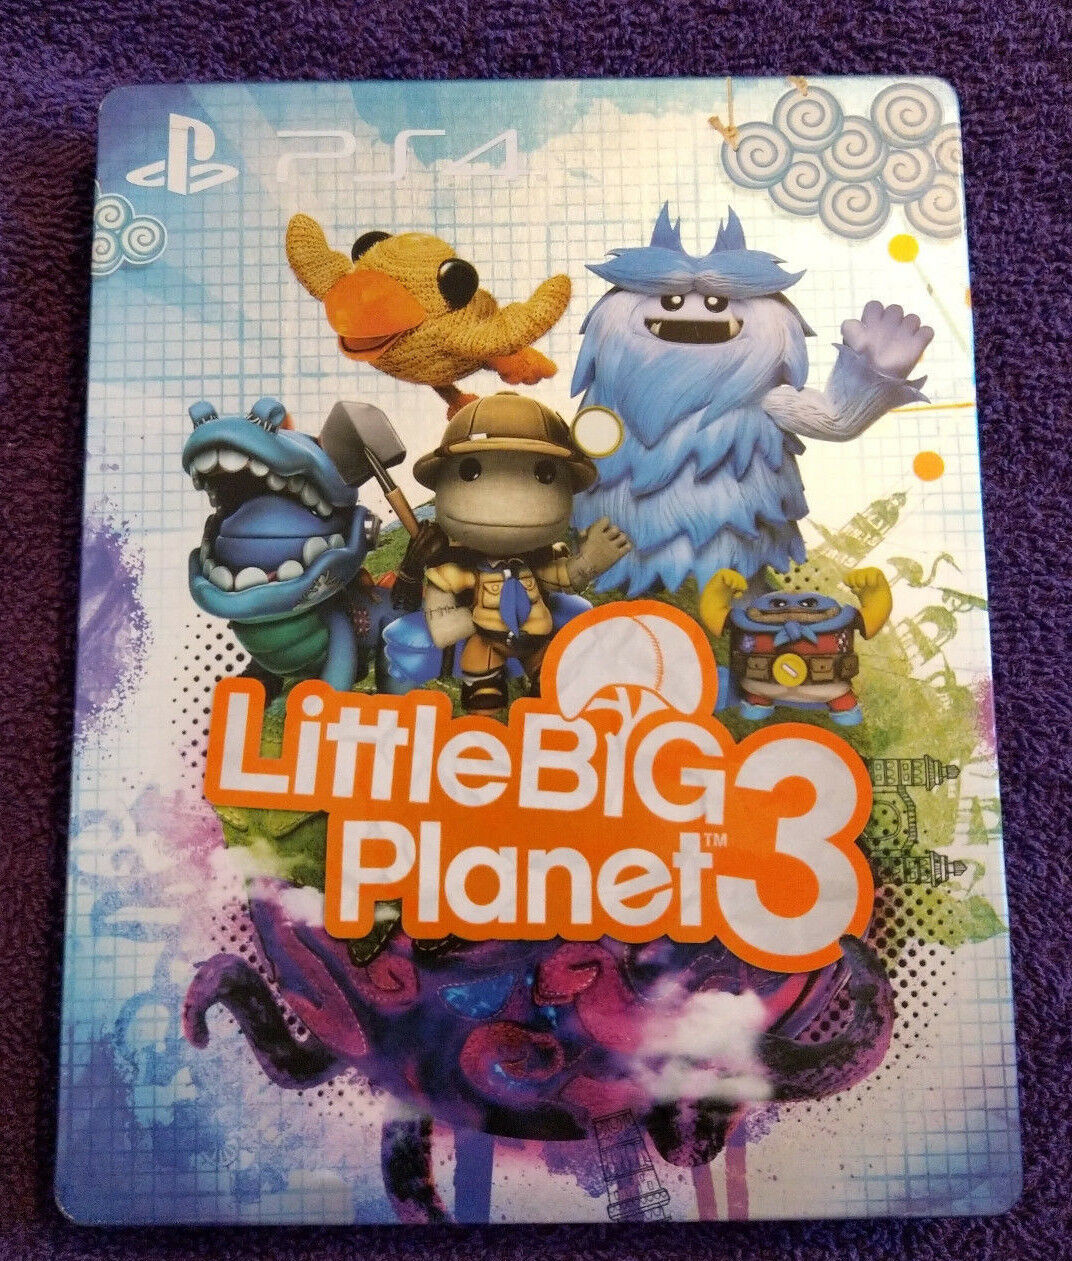 Little Big Planet 3 Steelbook Playstation 4 Ps4 No Game 1 Of 3free Shipping